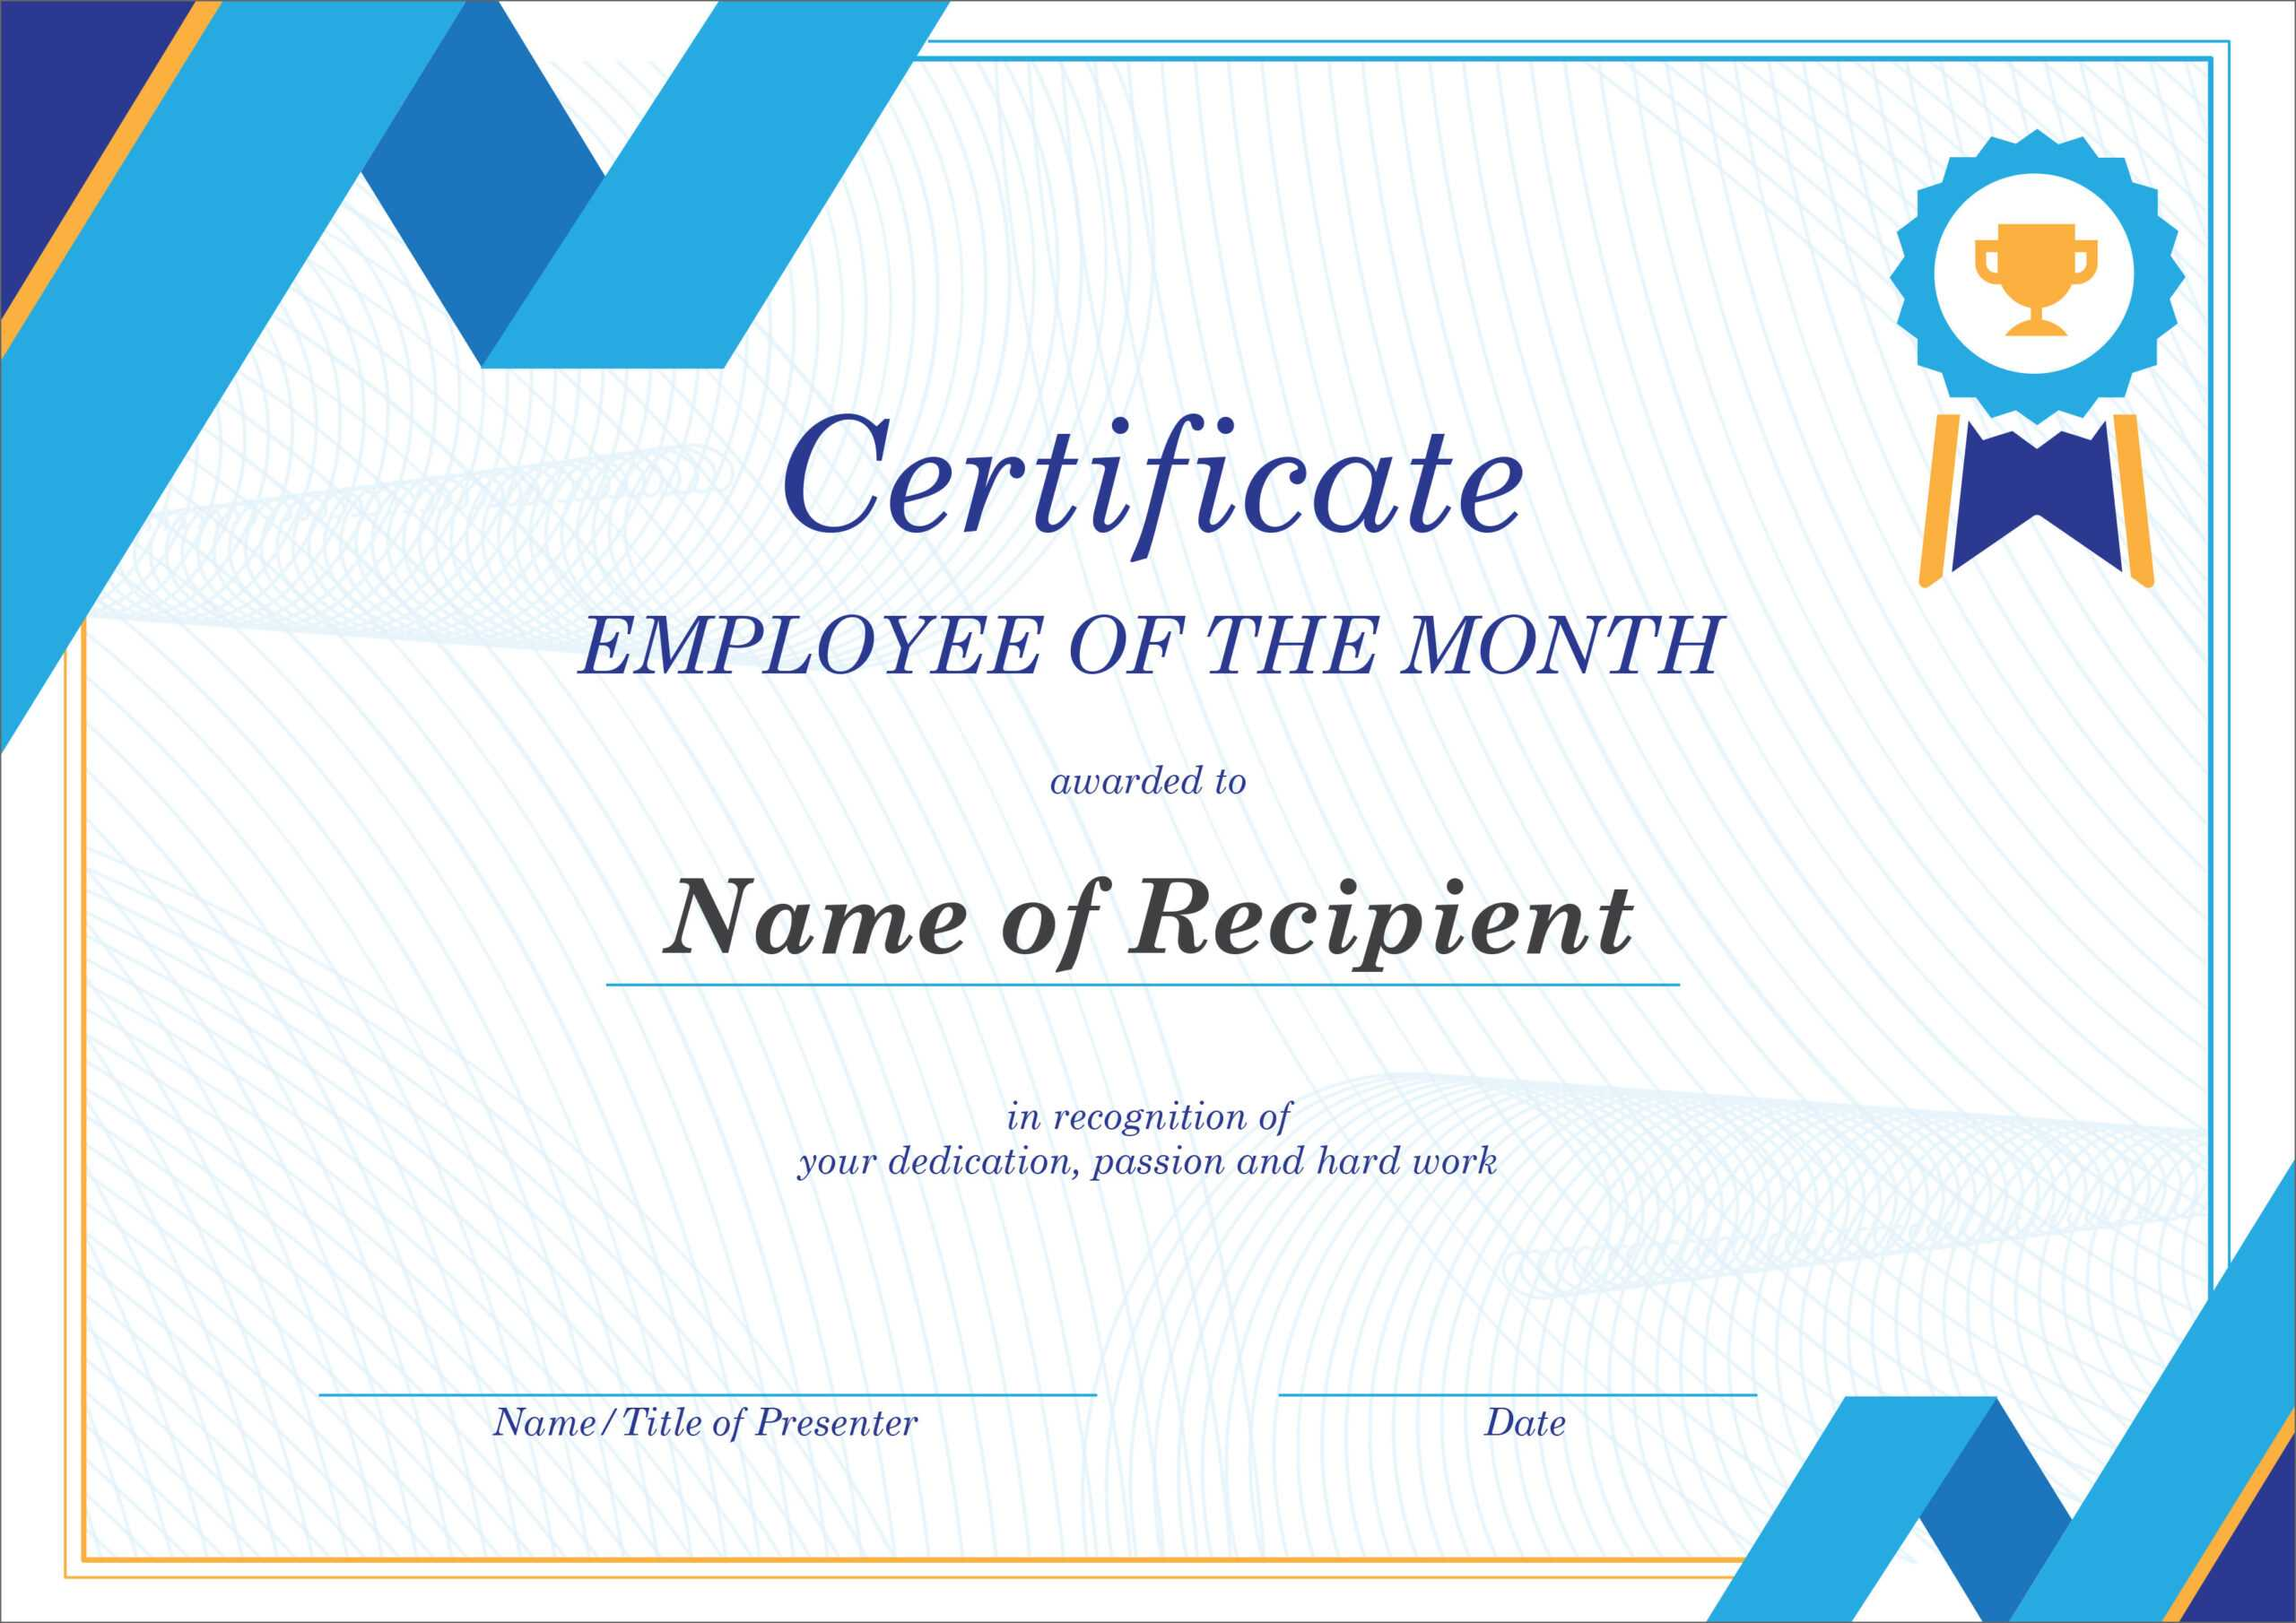 50 Free Creative Blank Certificate Templates In Psd Pertaining To Free Funny Certificate Templates For Word